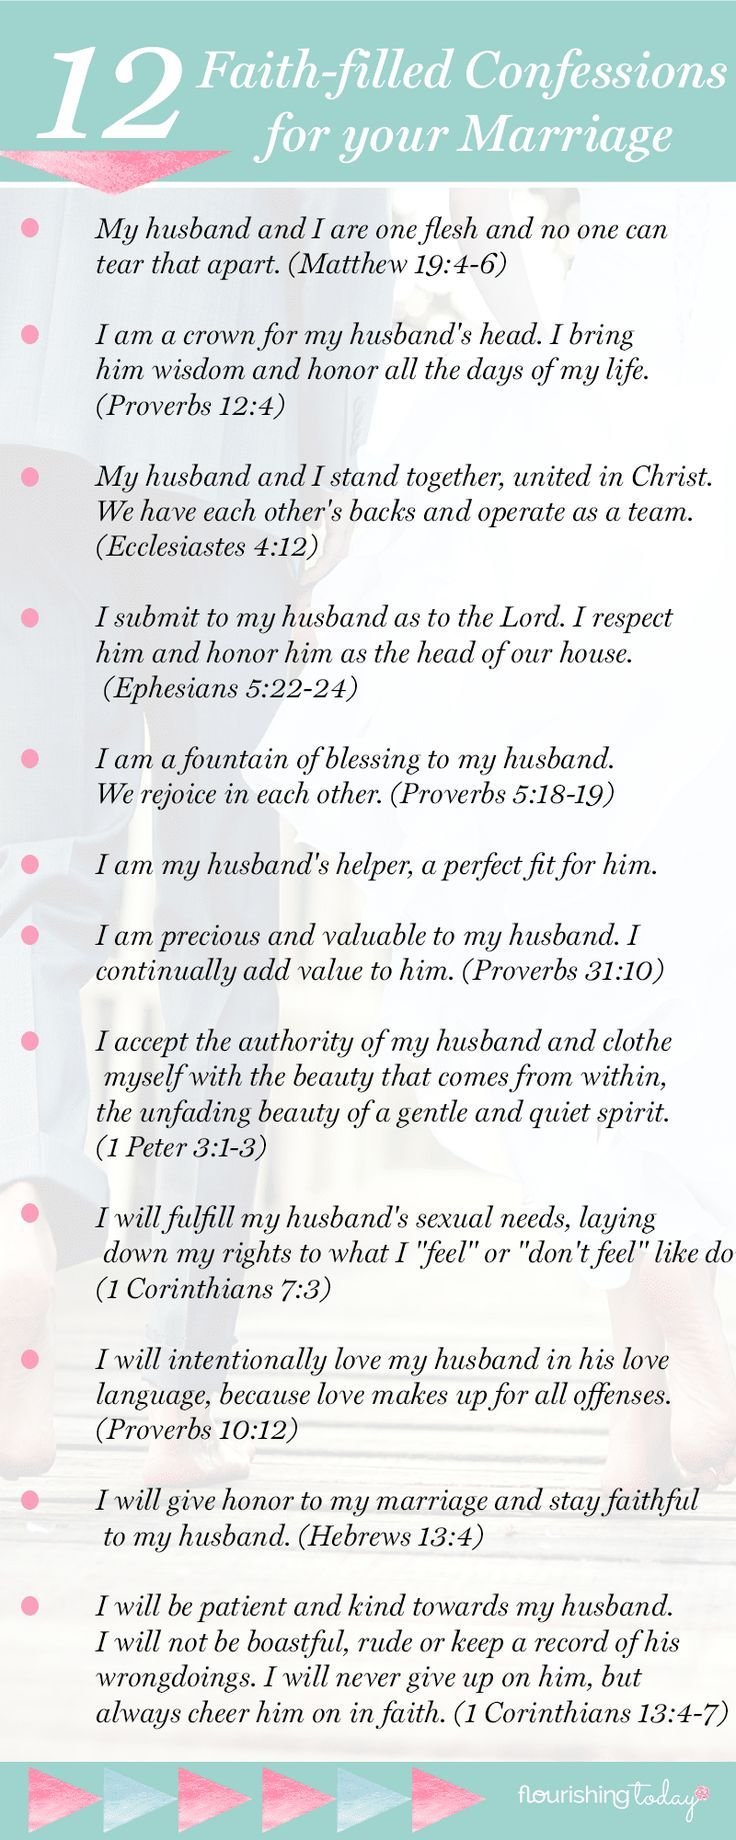 12 faith filled confessions that will make your marriage soar your words have power to build up here are 12 faith filled marriage confessions to make your marriage soar free printable malvernweather Image collections